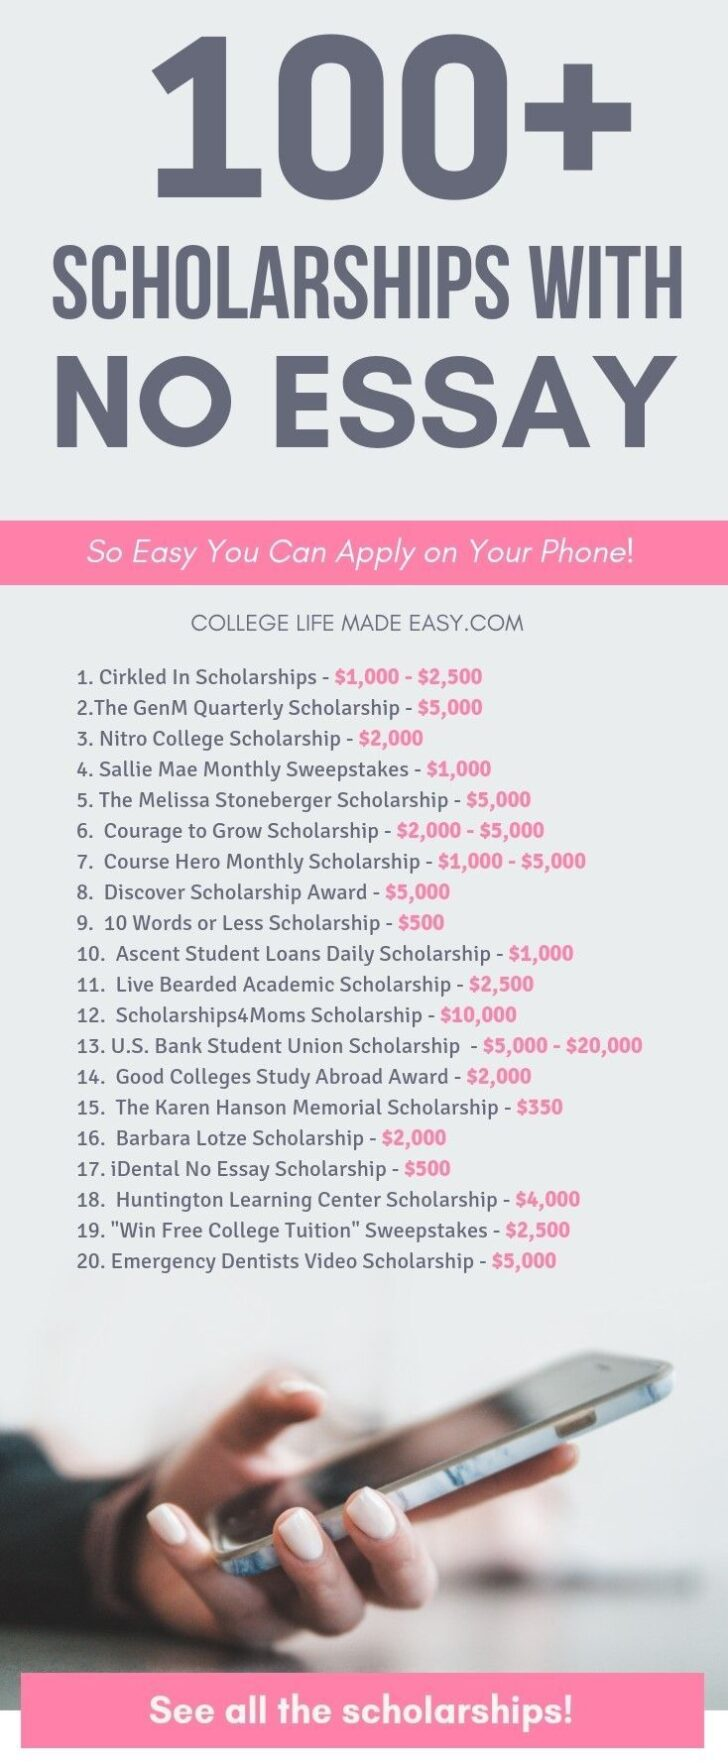 Essay Scholarships For College Students 2020